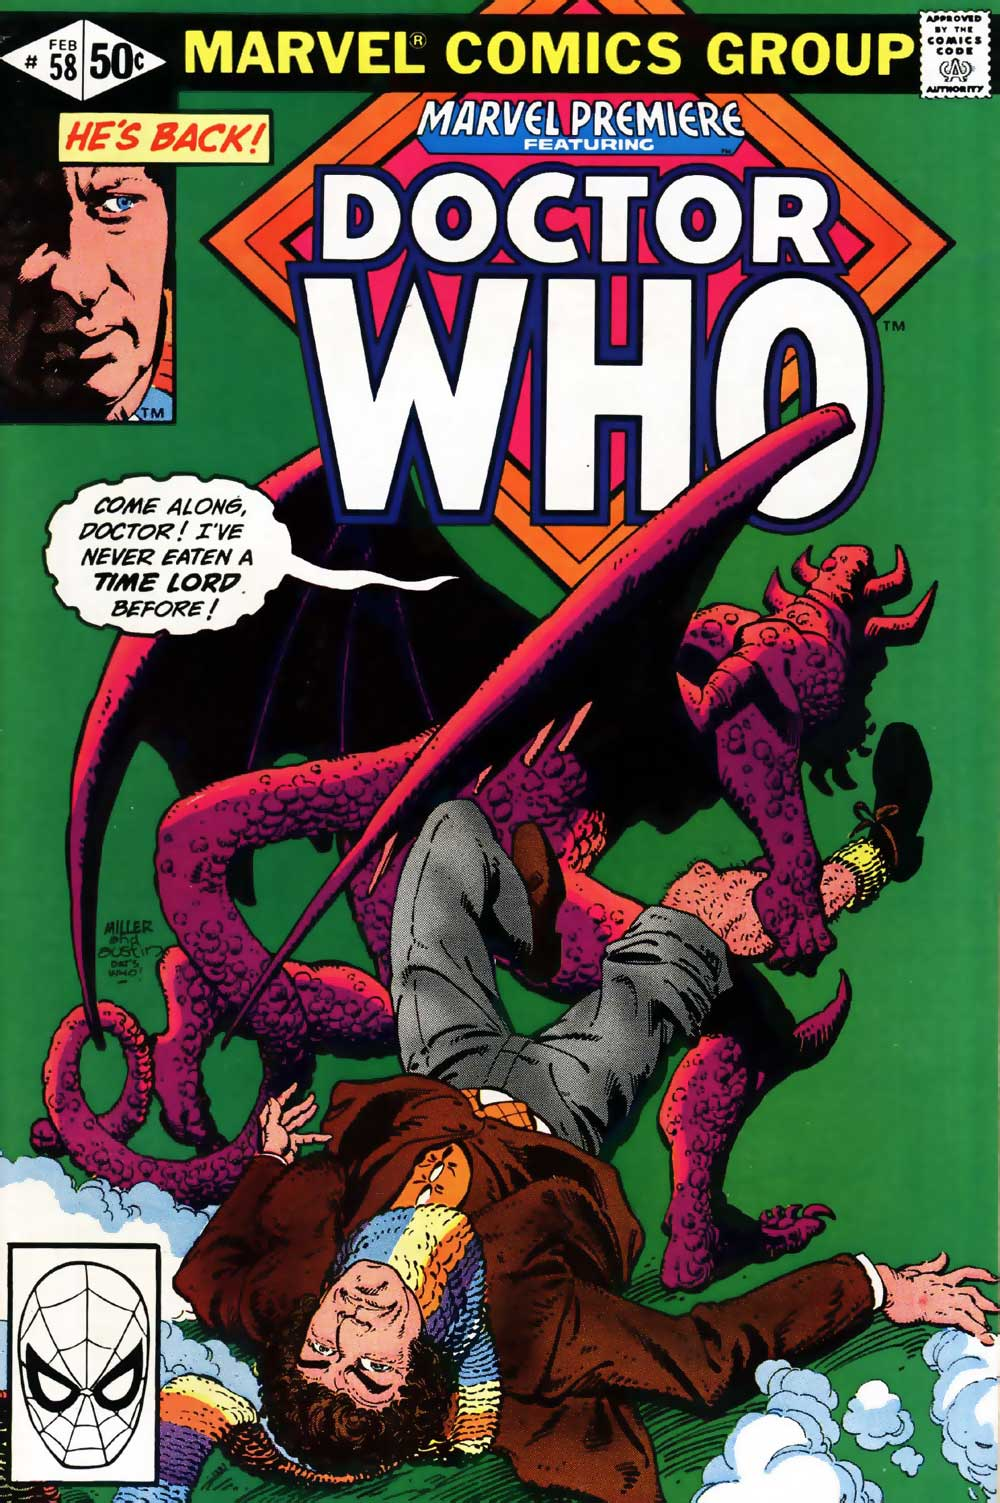 Marvel Premiere #58 featuring DOCTOR WHO! Cover by Frank Miller and Terry Austin!